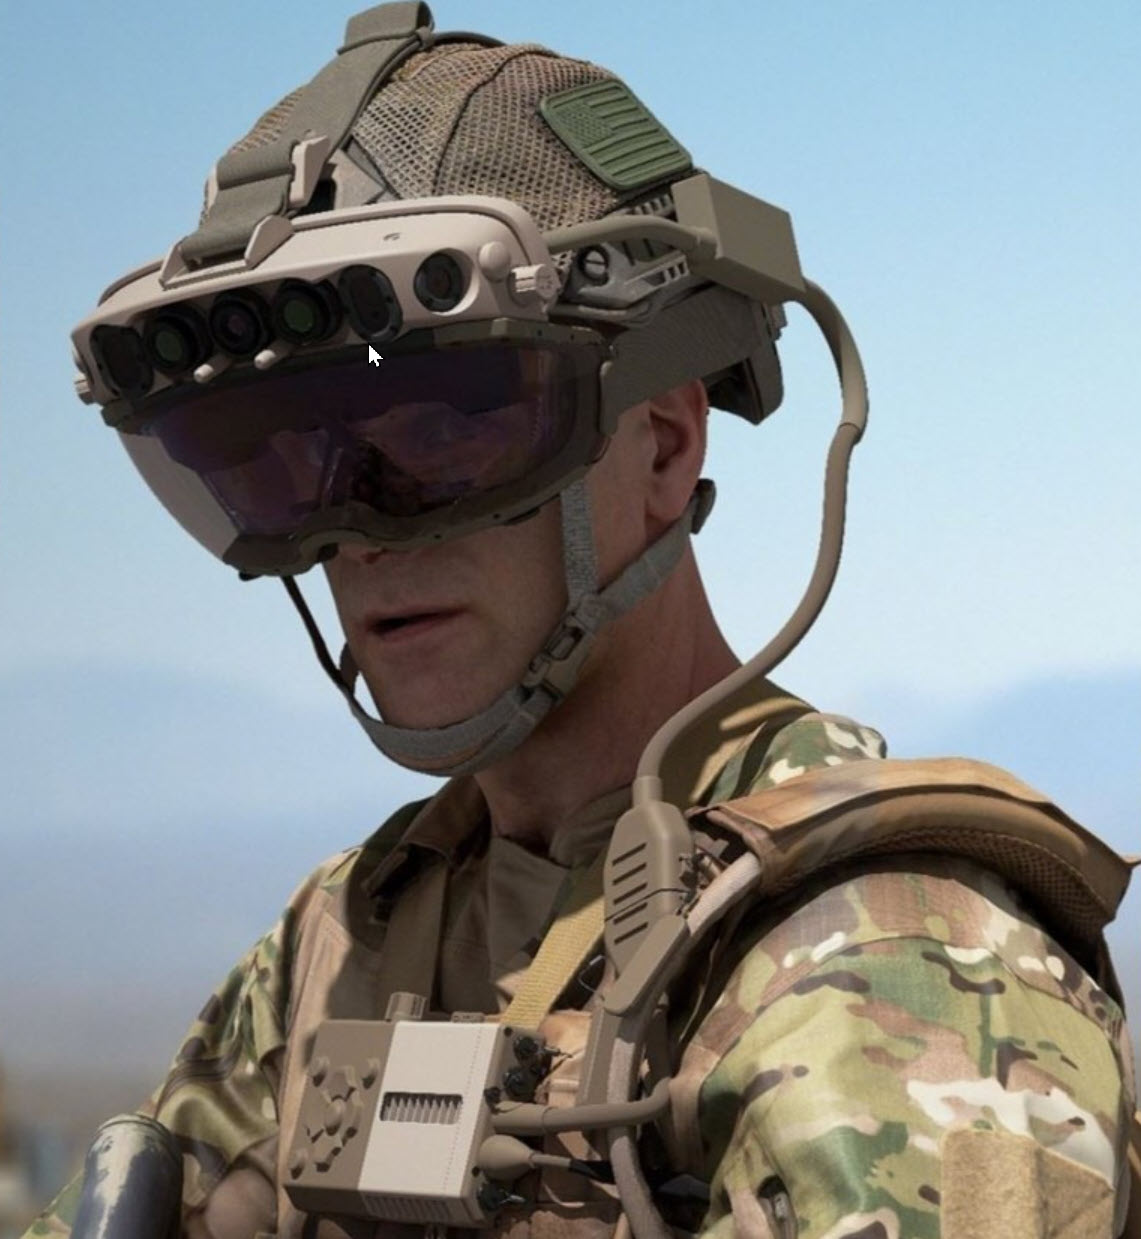 Capability Set 3 (CS 3) military form factor prototype of the Integrated Visual Augmentation System (IVAS). (Courtney Bacon)